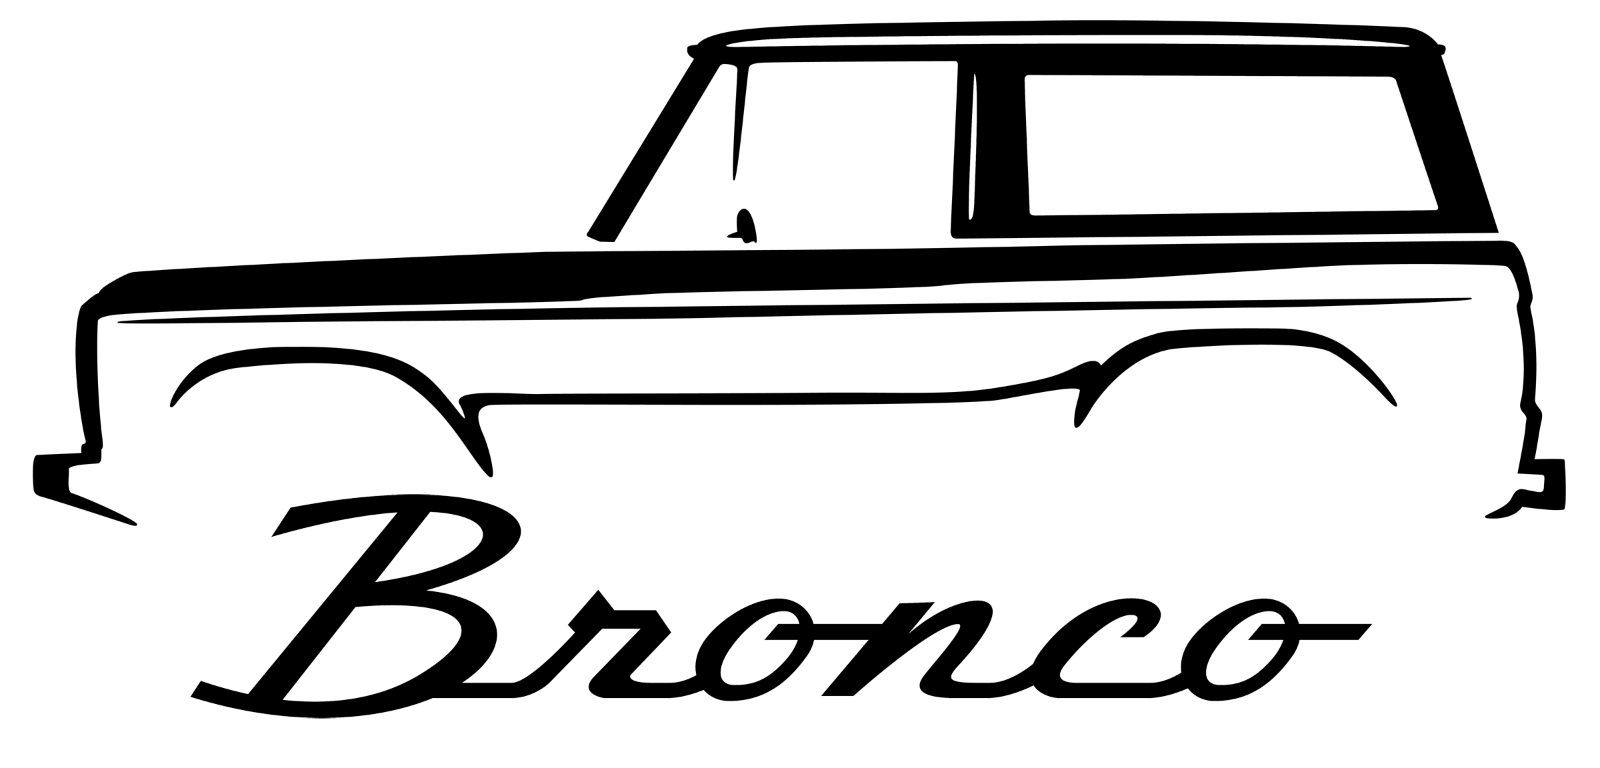 Broncos vector outline. Hello and thanks for